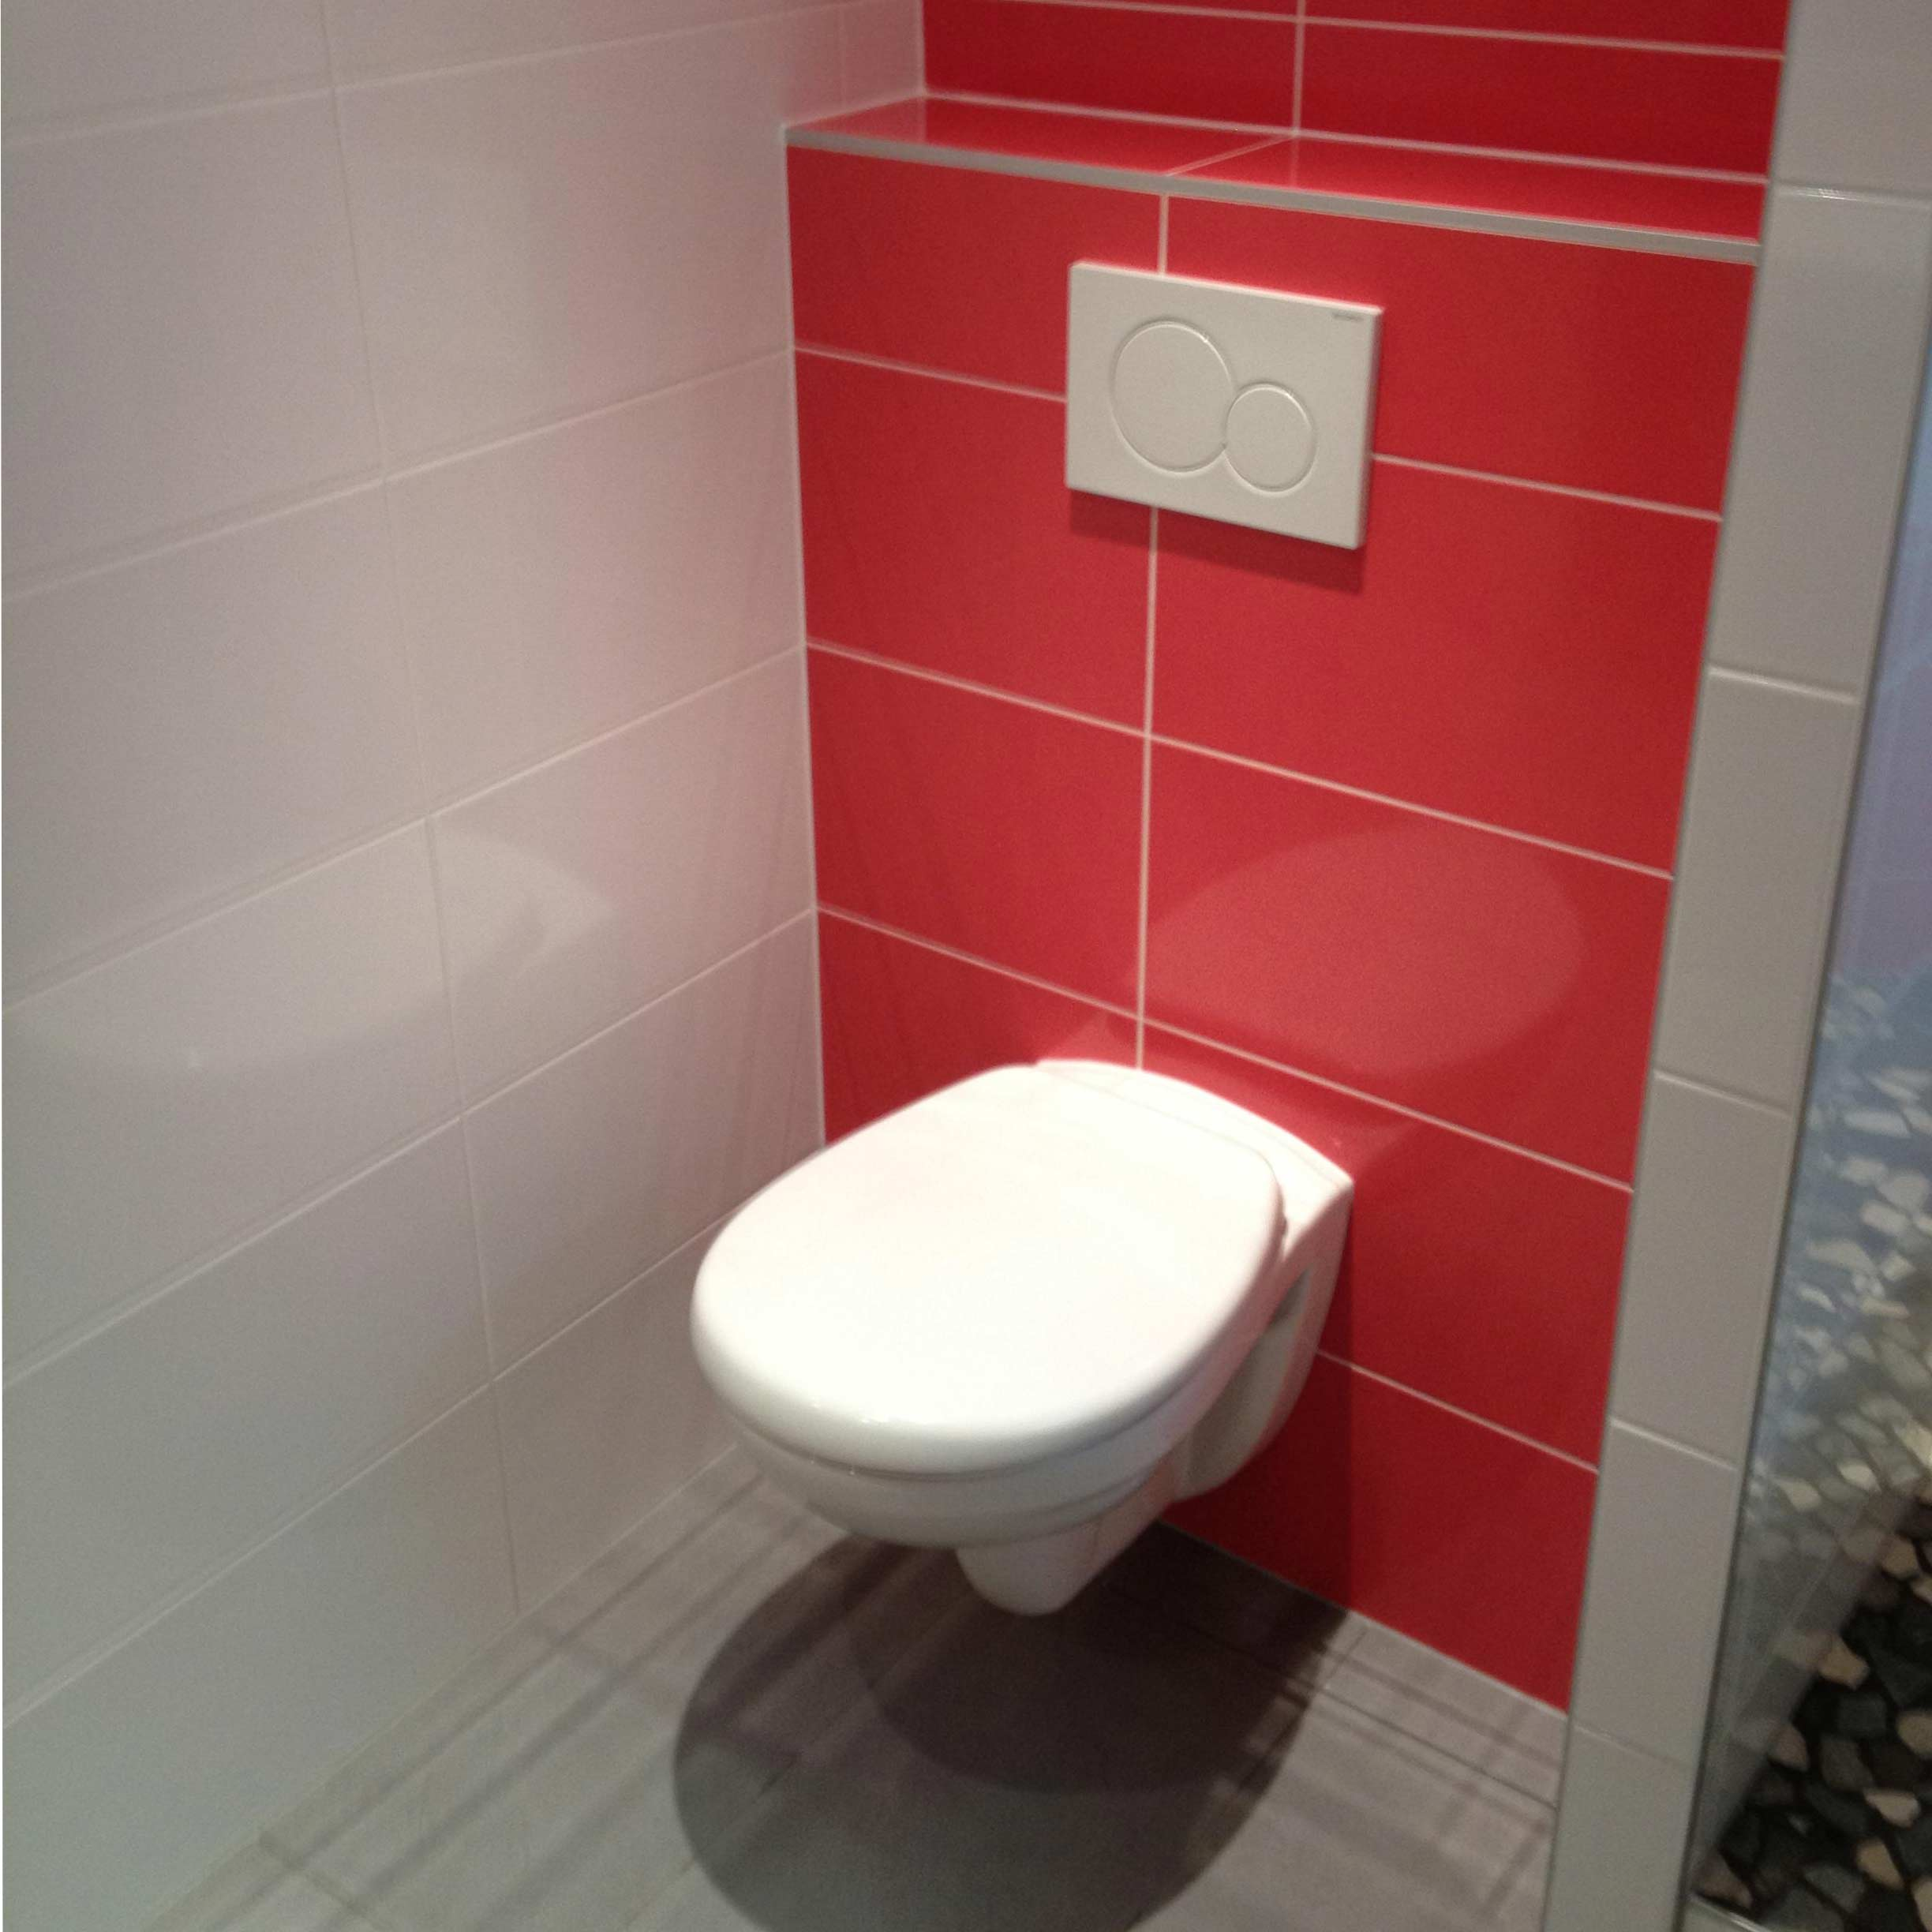 Carrelage design carrelage wc suspendu moderne design for Salle de bain avec wc suspendu